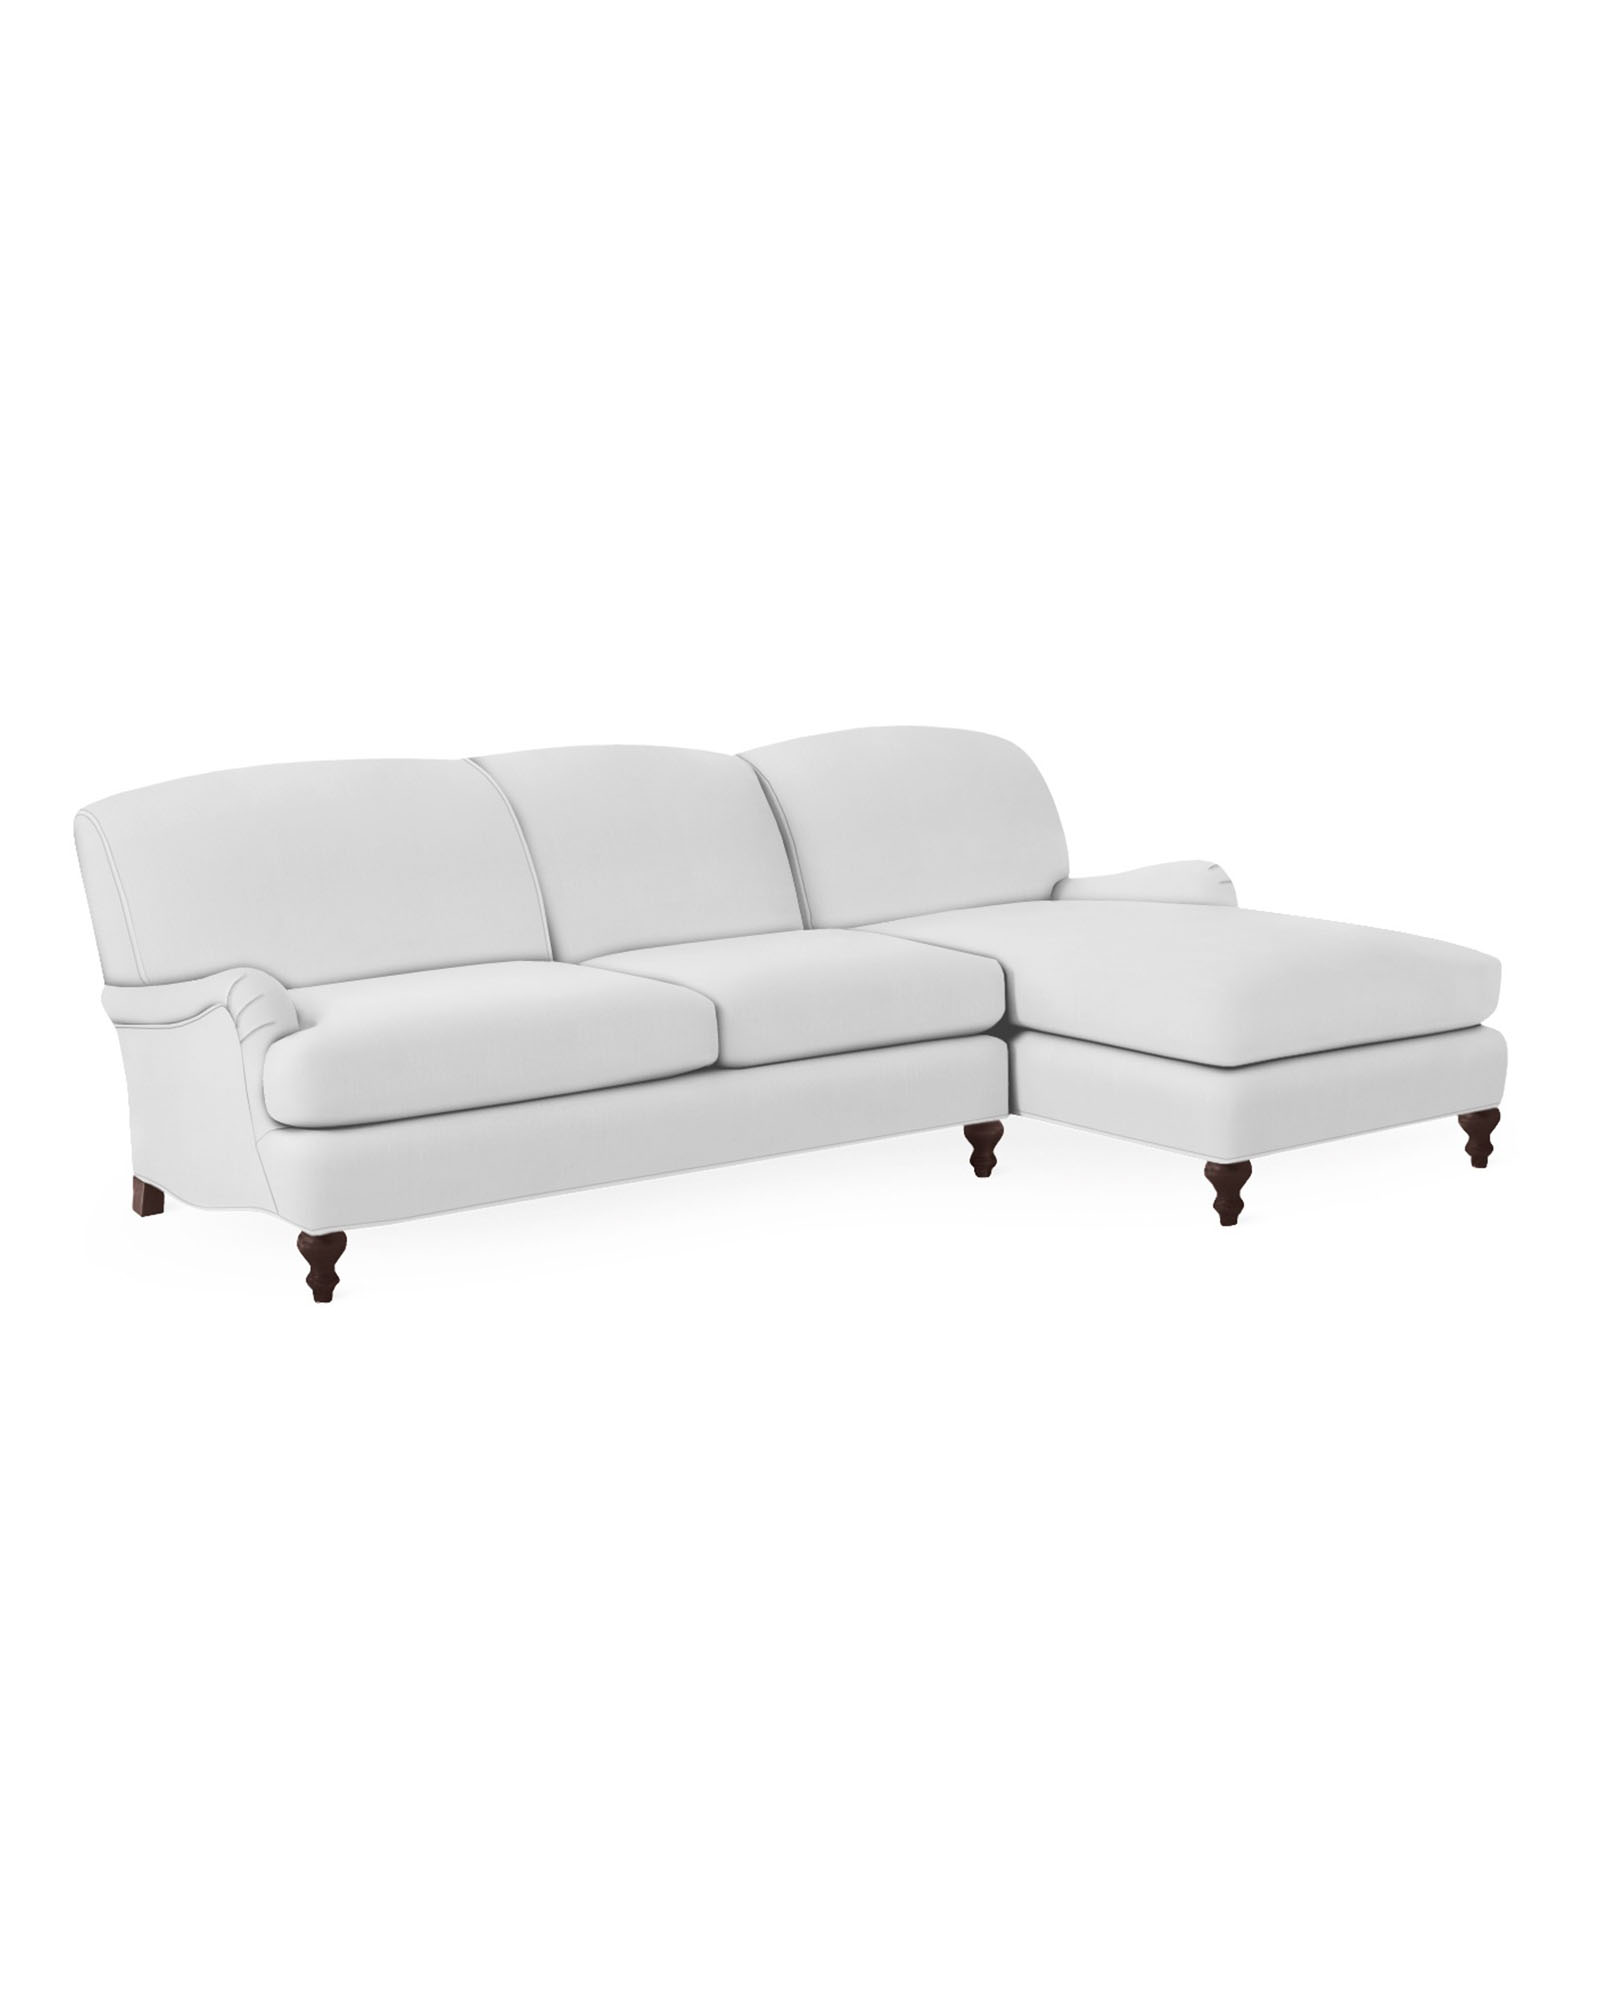 Miramar Chaise Sectional - Right Facing,